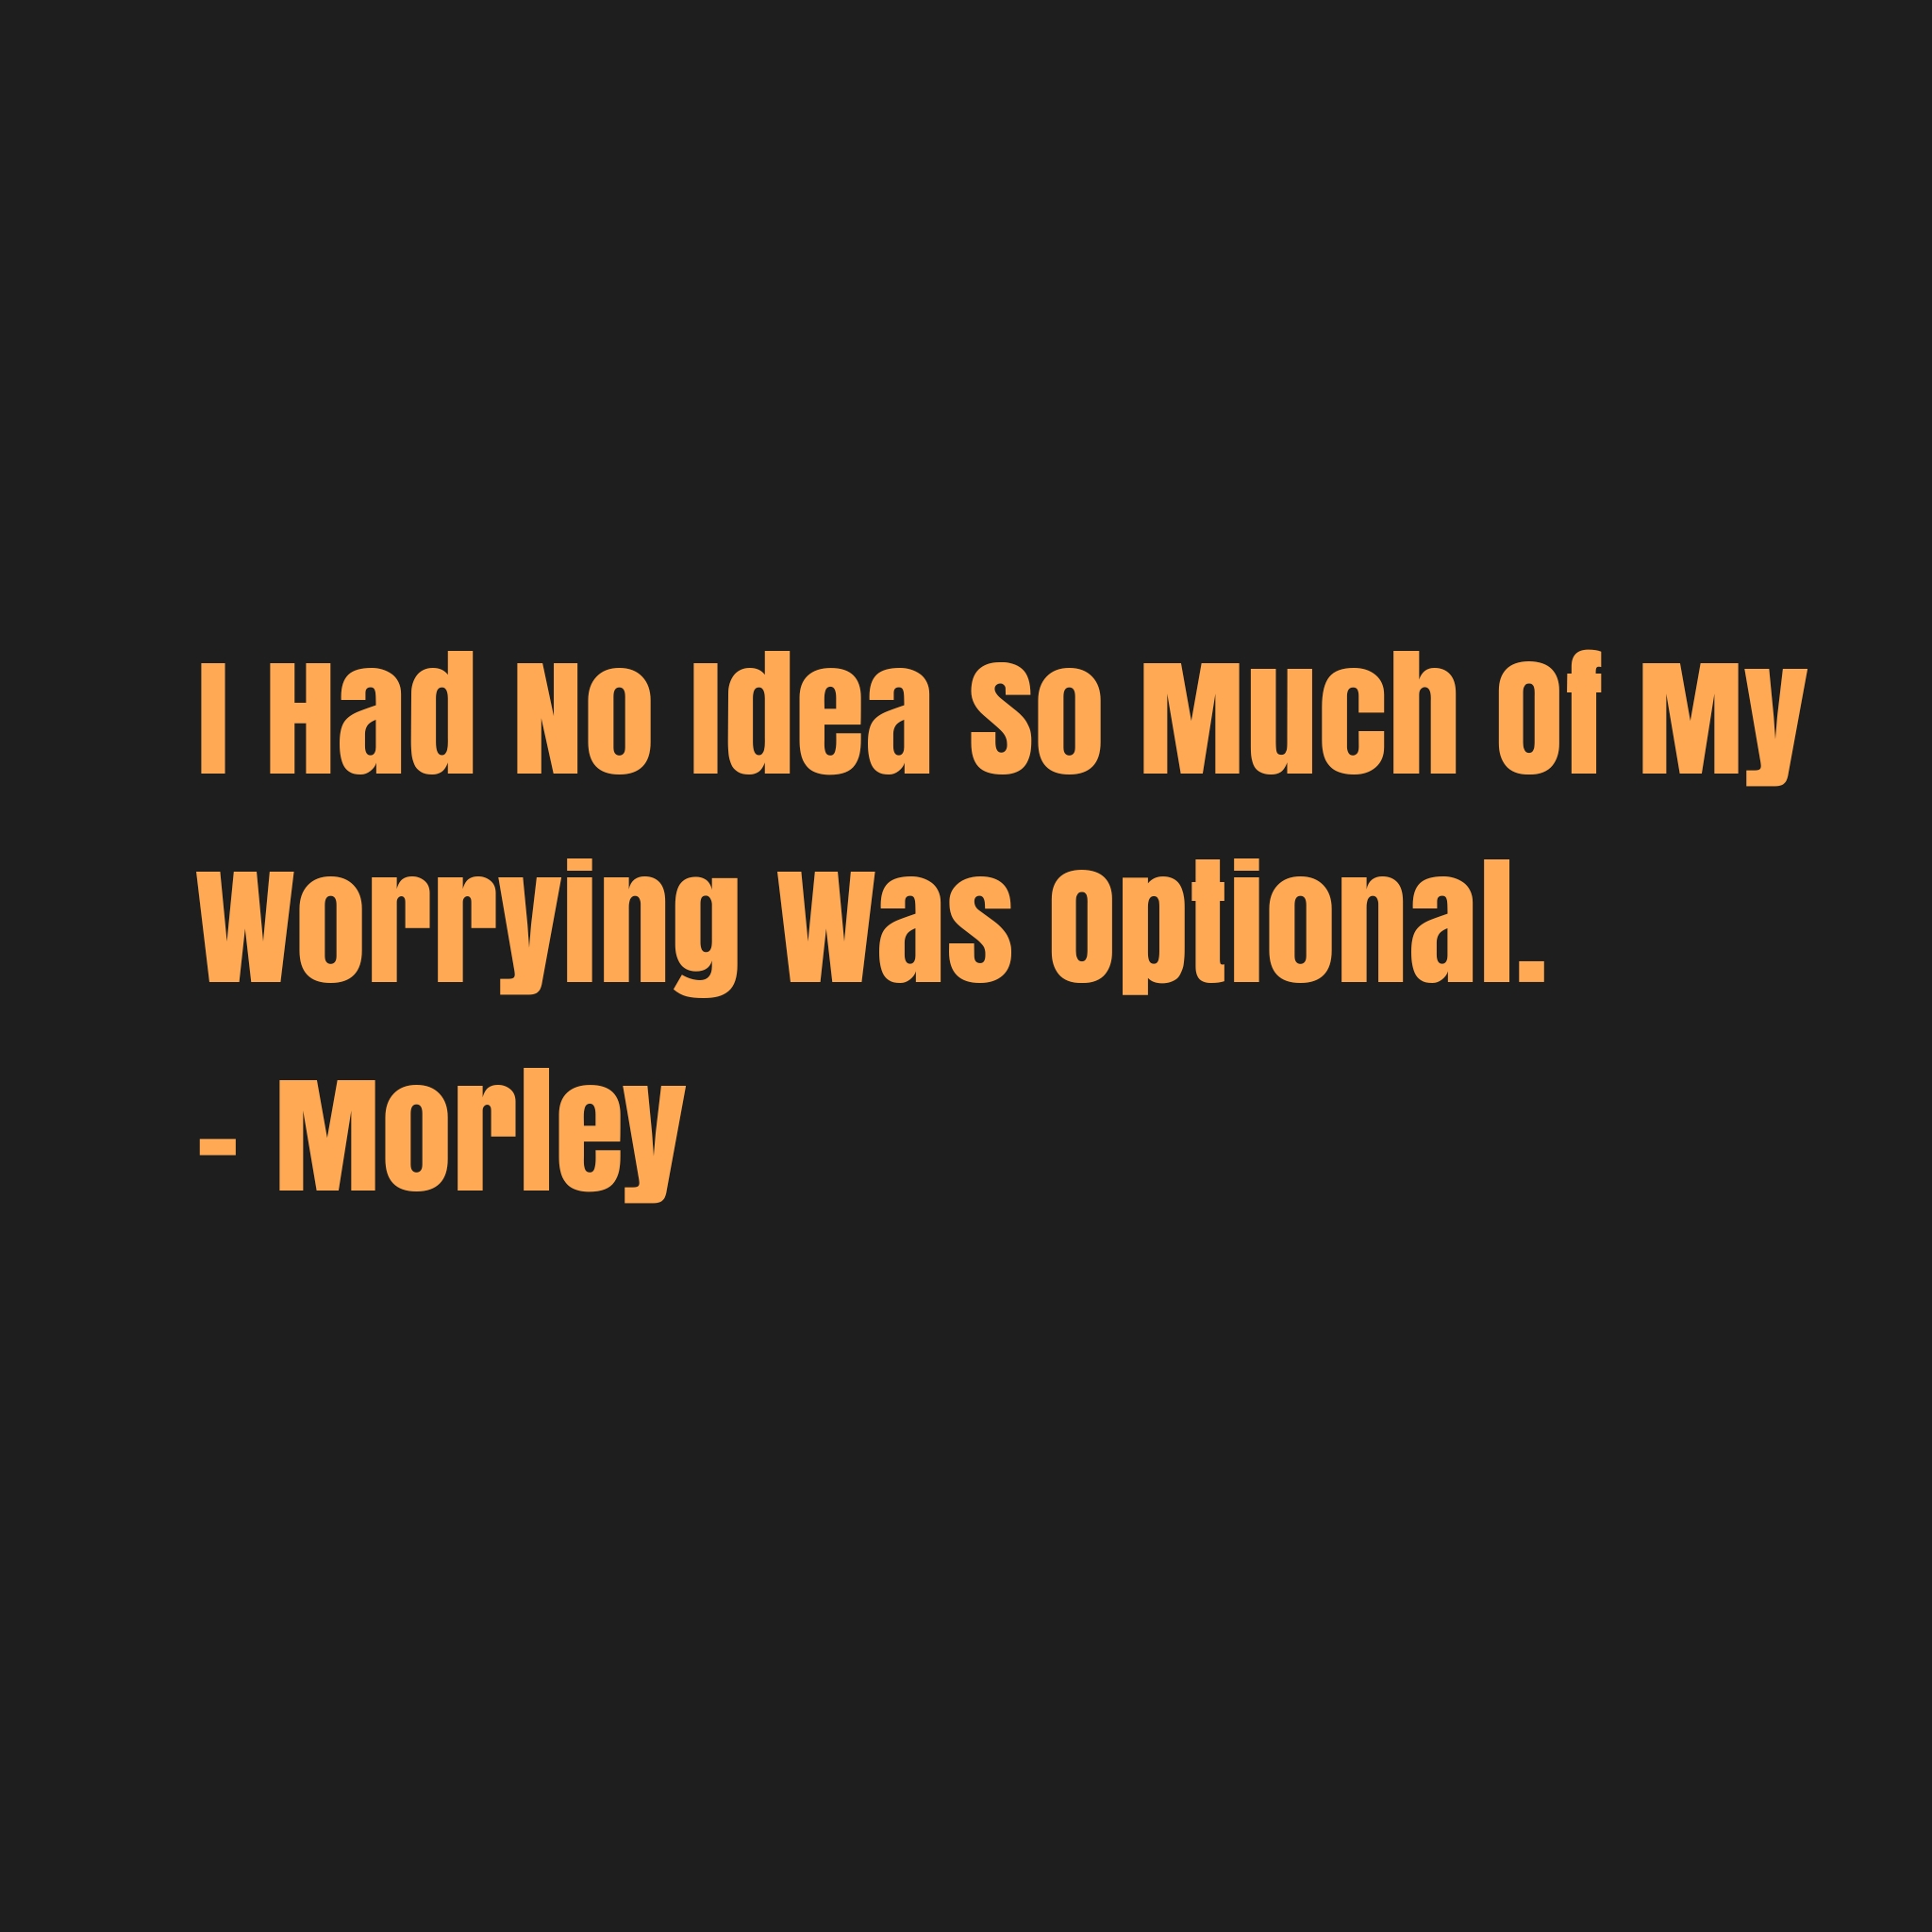 [Image] Action is mandatory, worrying is optional